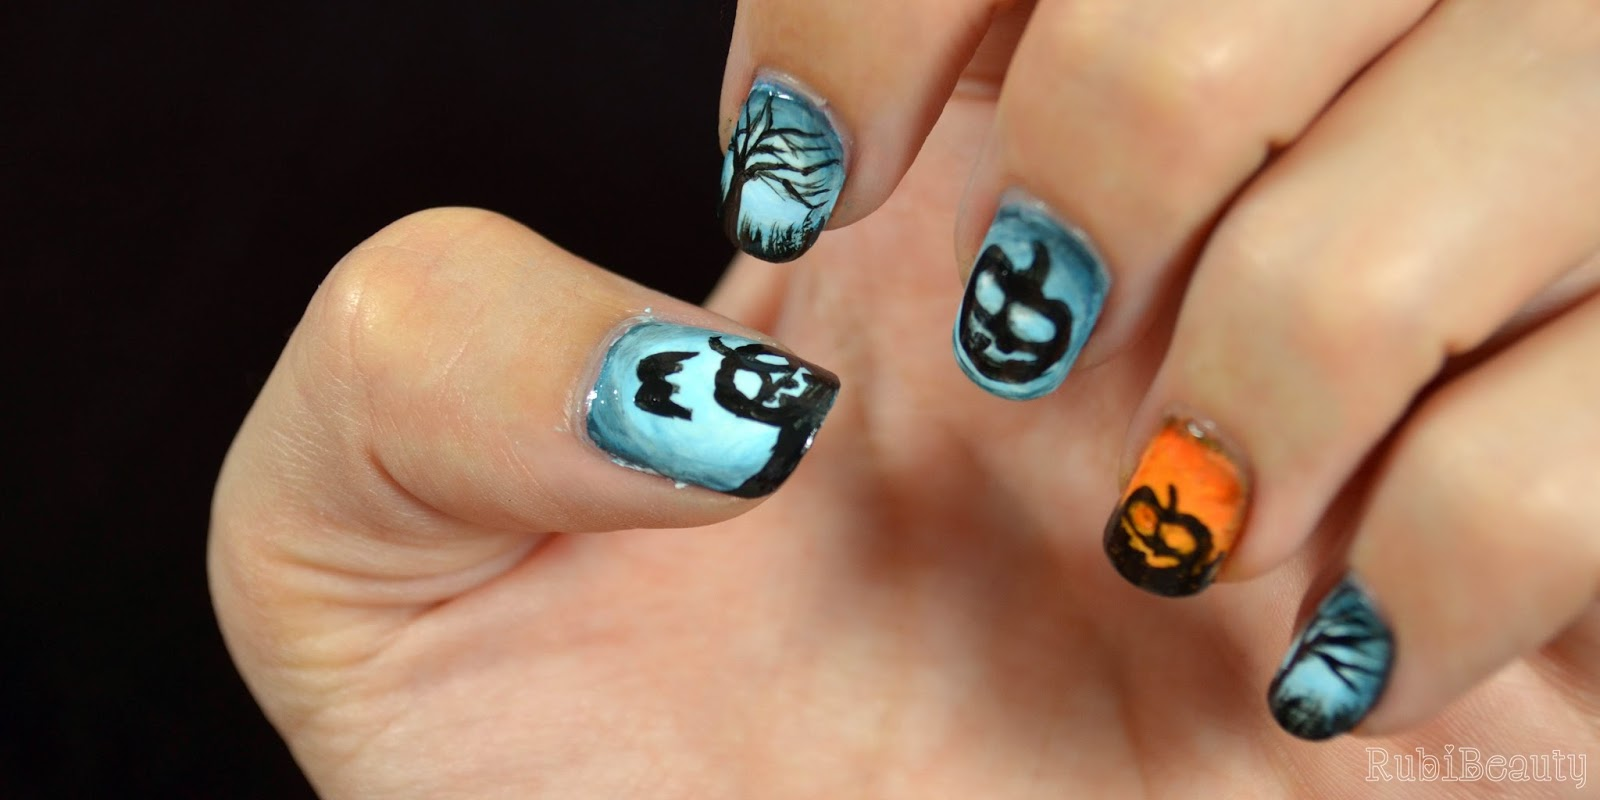 Rubibeauty nail art nailart halloween 2014 pumpkins